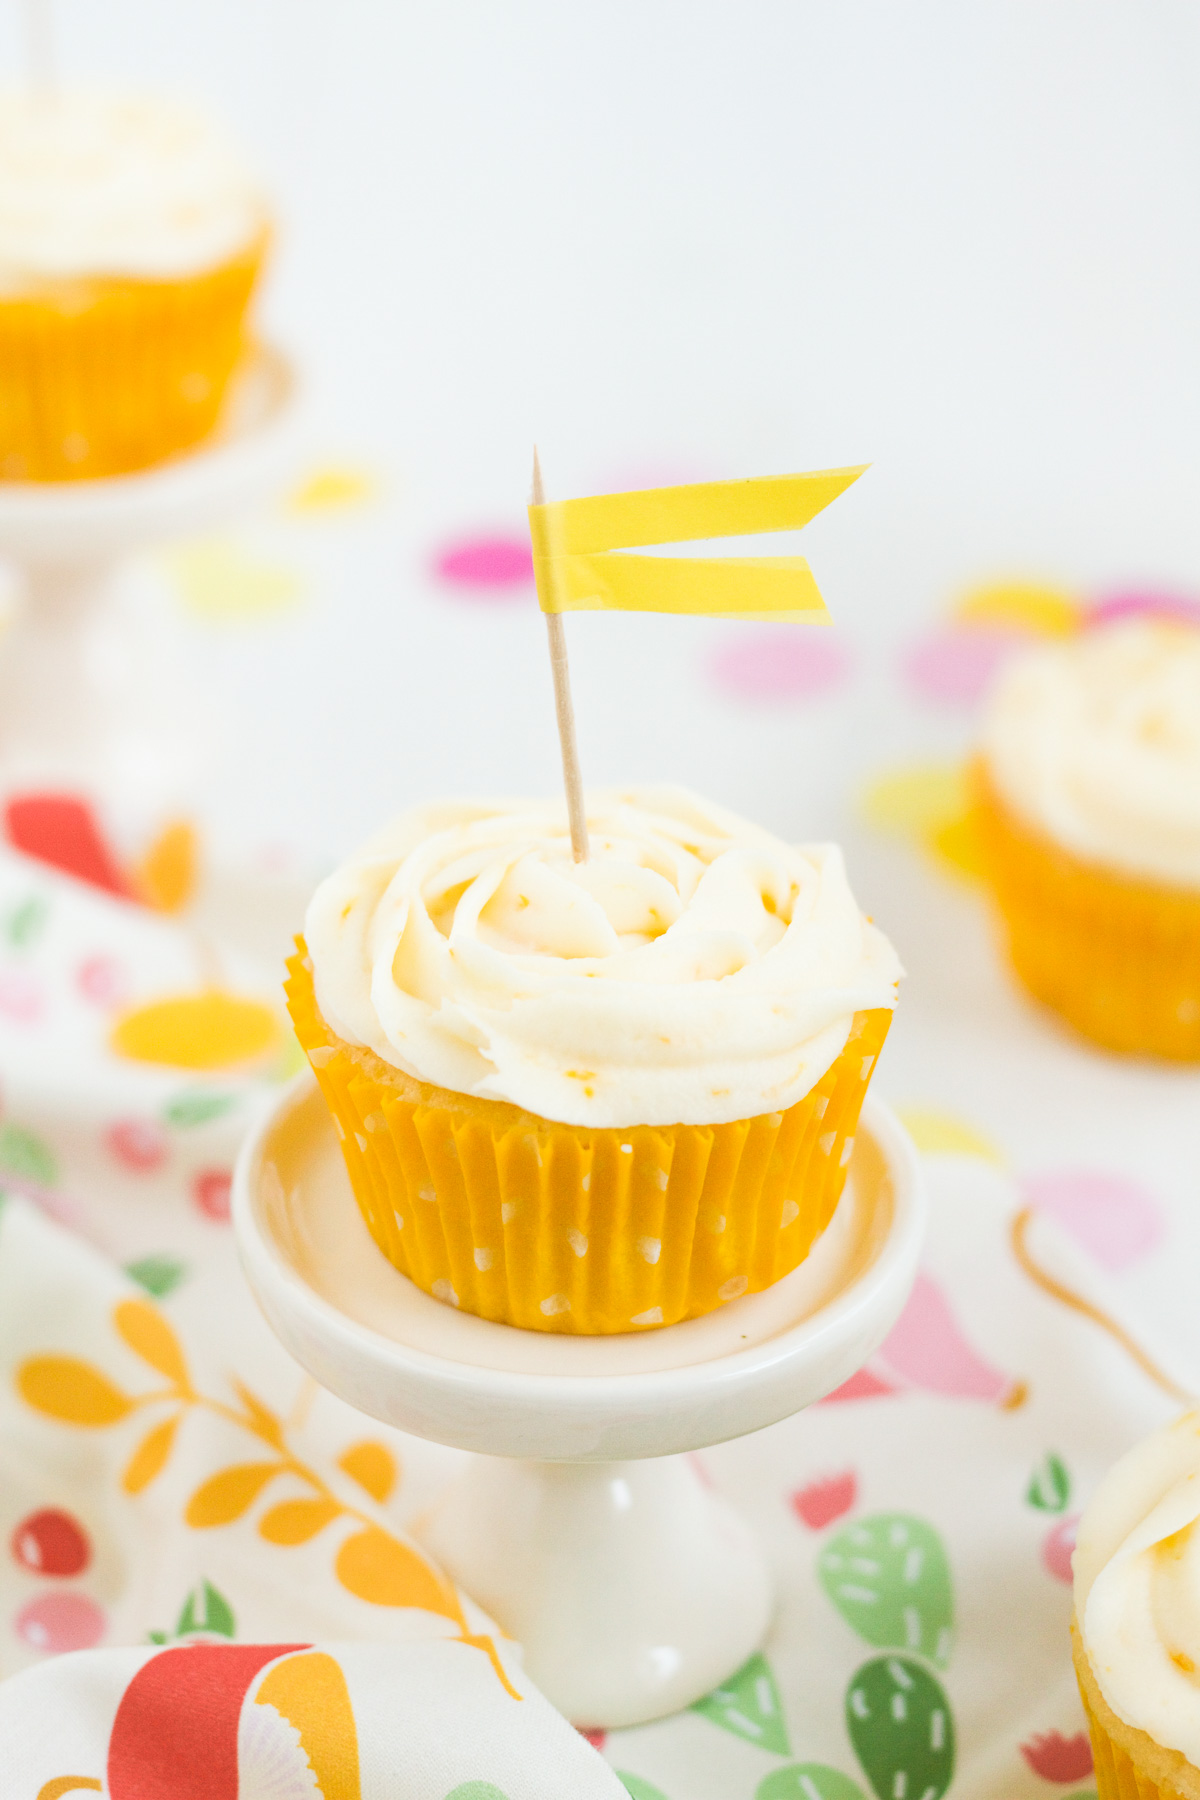 Meyer Lemon Cupcakes with Meyer Lemon Buttercream